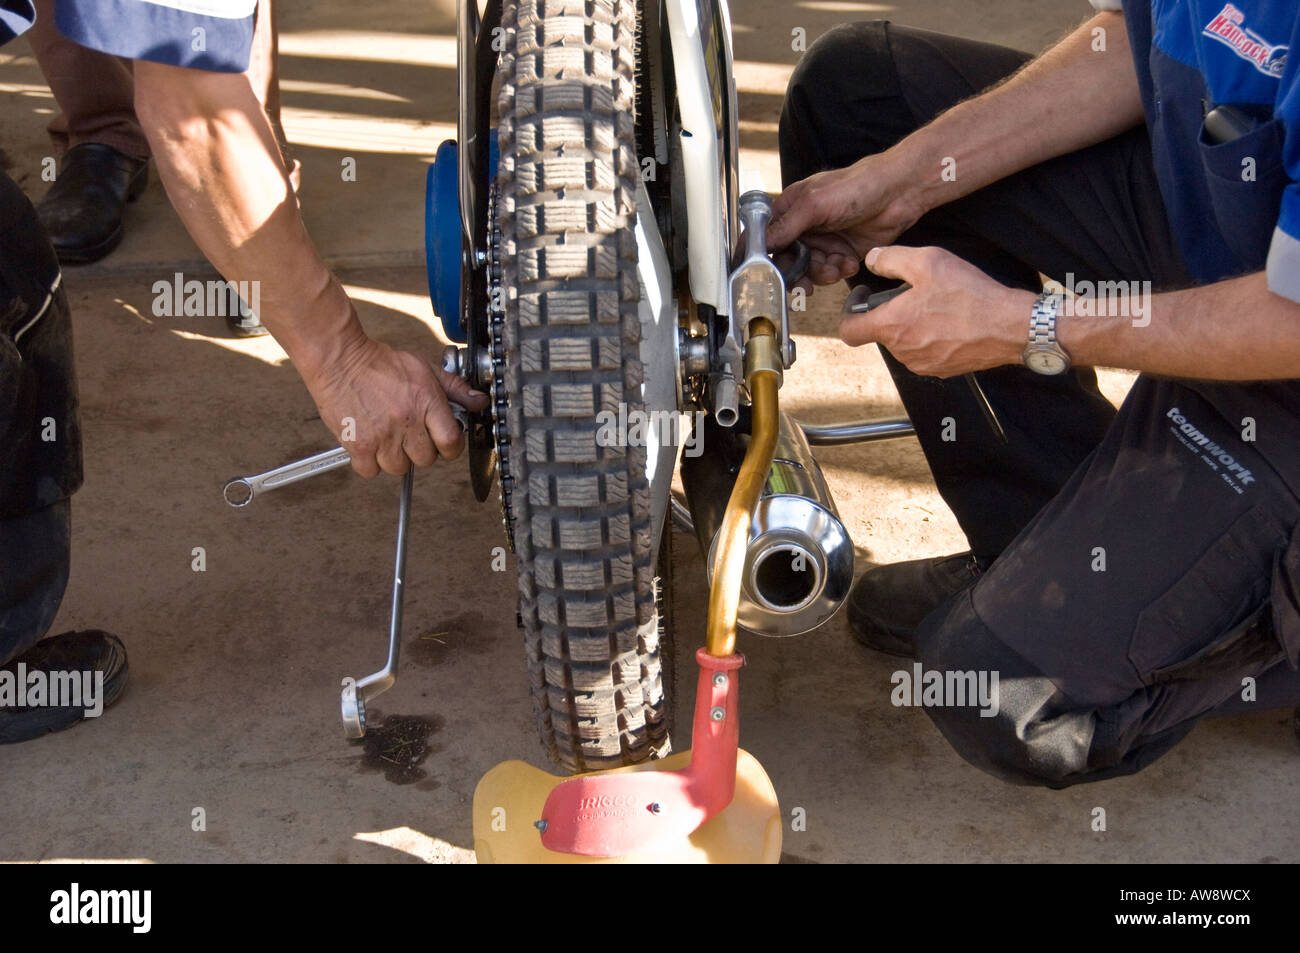 Mechanics working on a speedway motorcycle before a race - Stock Image